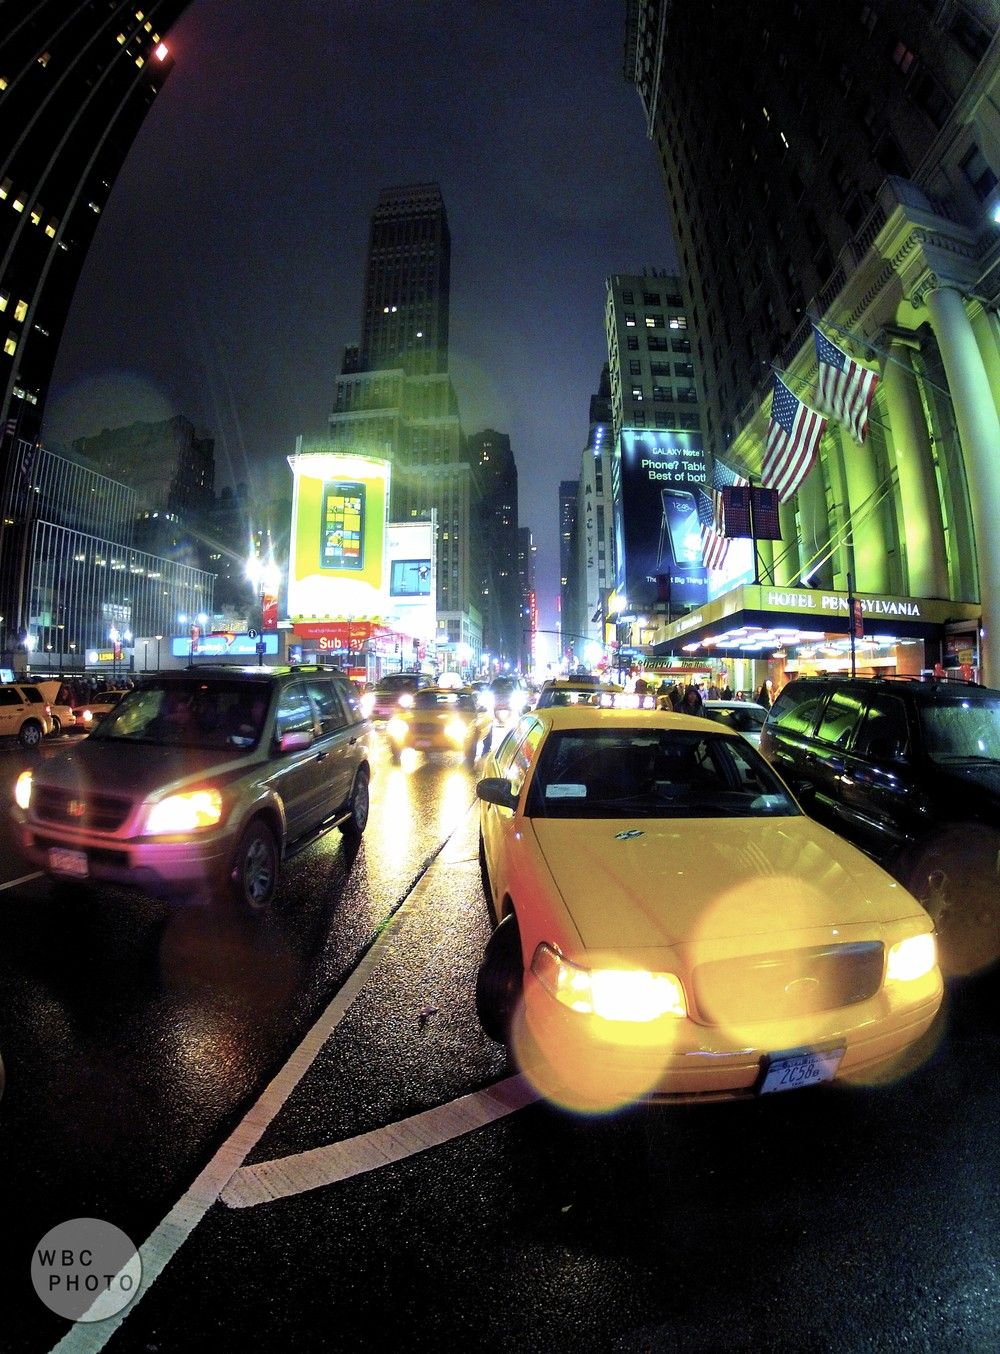 neon-lights-nyc-gopro-wbc.jpg